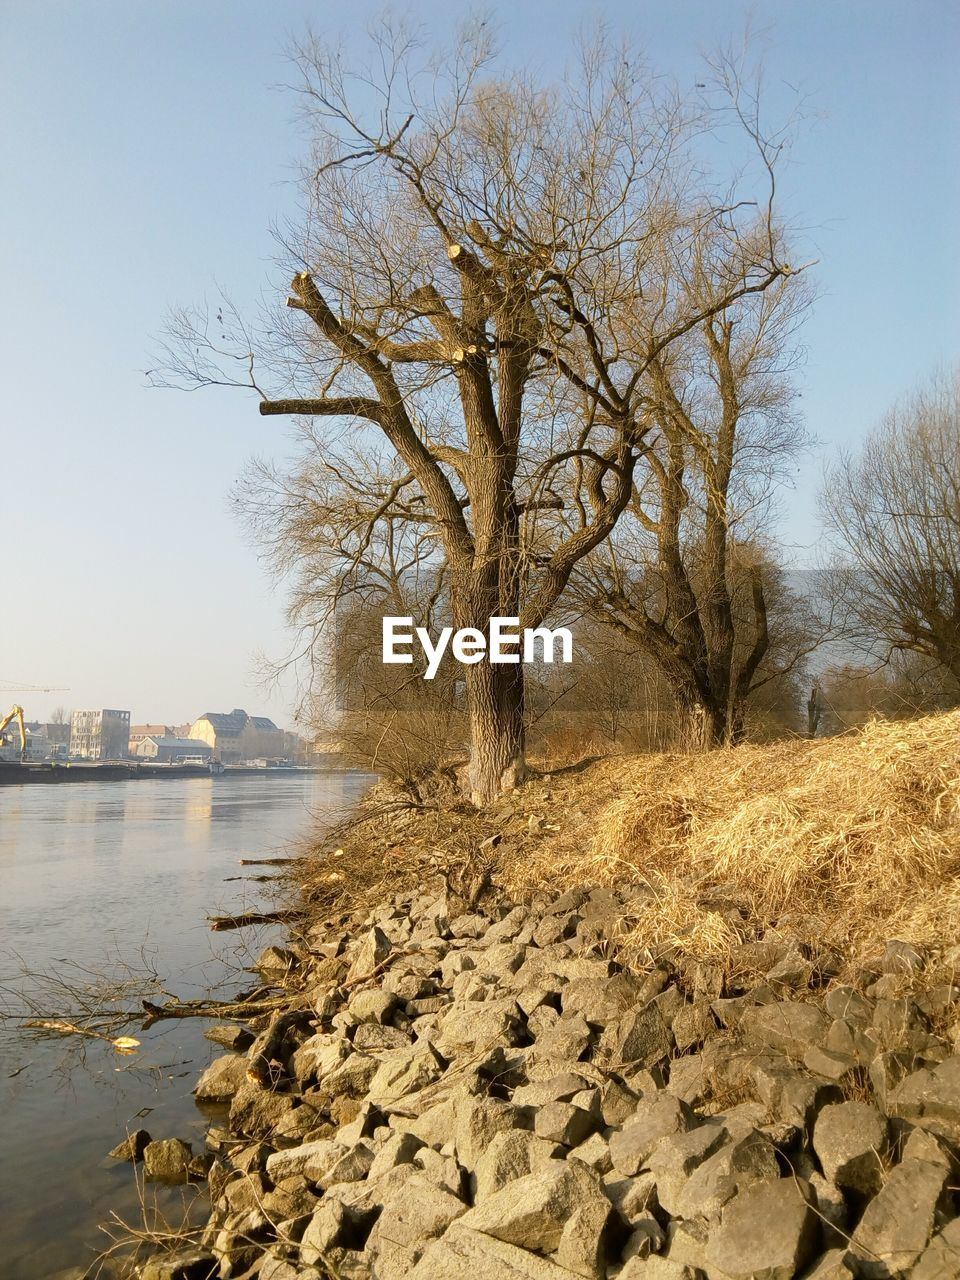 bare tree, tree, branch, water, nature, lone, day, outdoors, river, no people, sky, tranquility, built structure, beauty in nature, landscape, clear sky, architecture